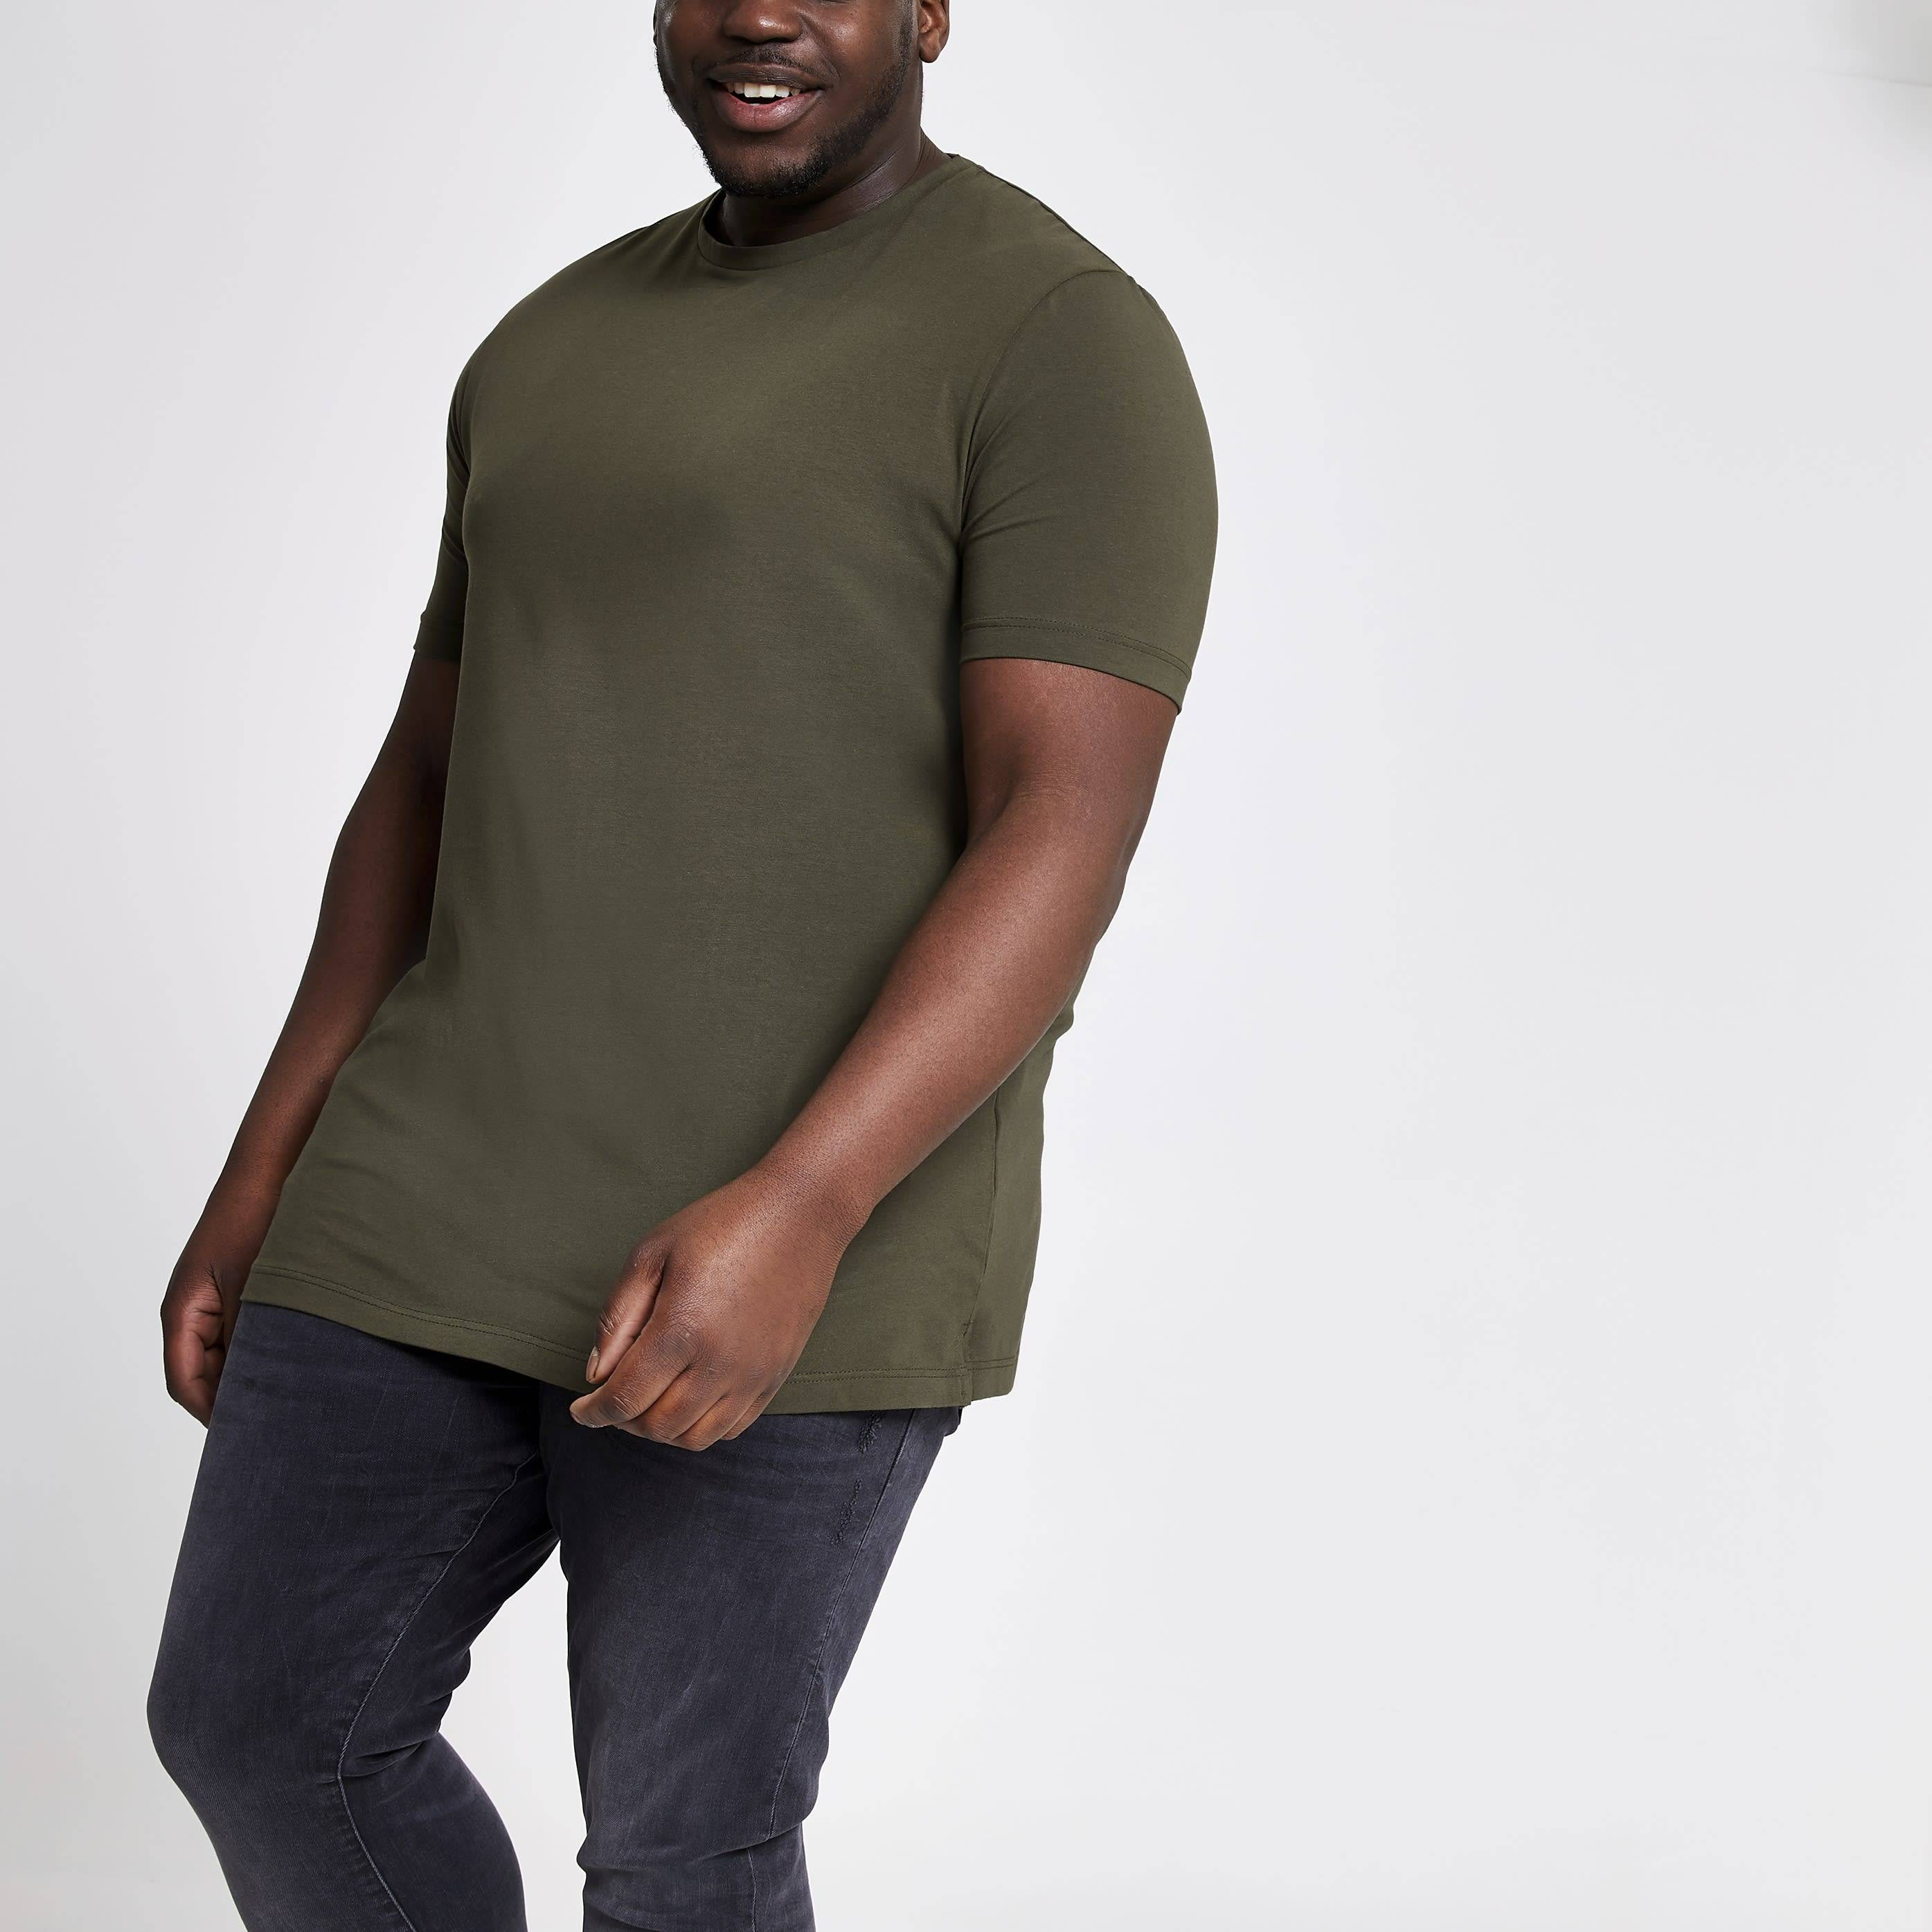 River Island Mens Big and Tall dark Green muscle fit T-shirt (XXXXXXL)